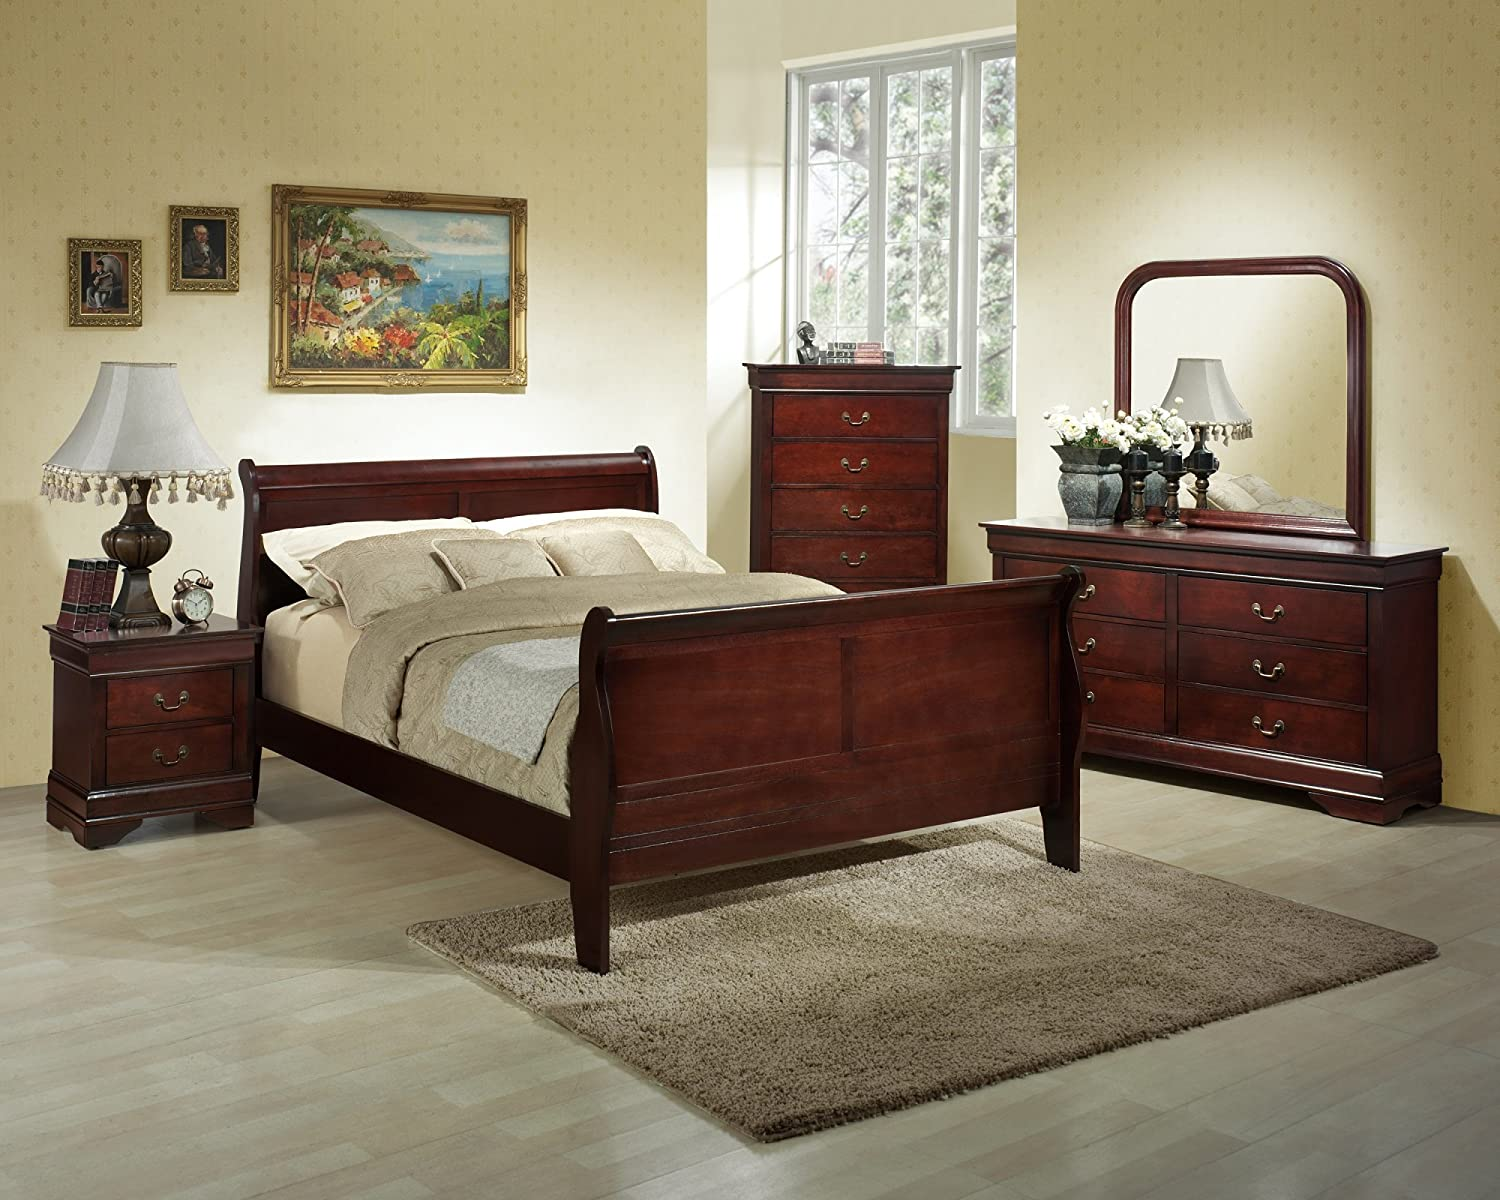 Amazon.com: Roundhill Furniture Isola 5-Piece Louis Philippe Style ...